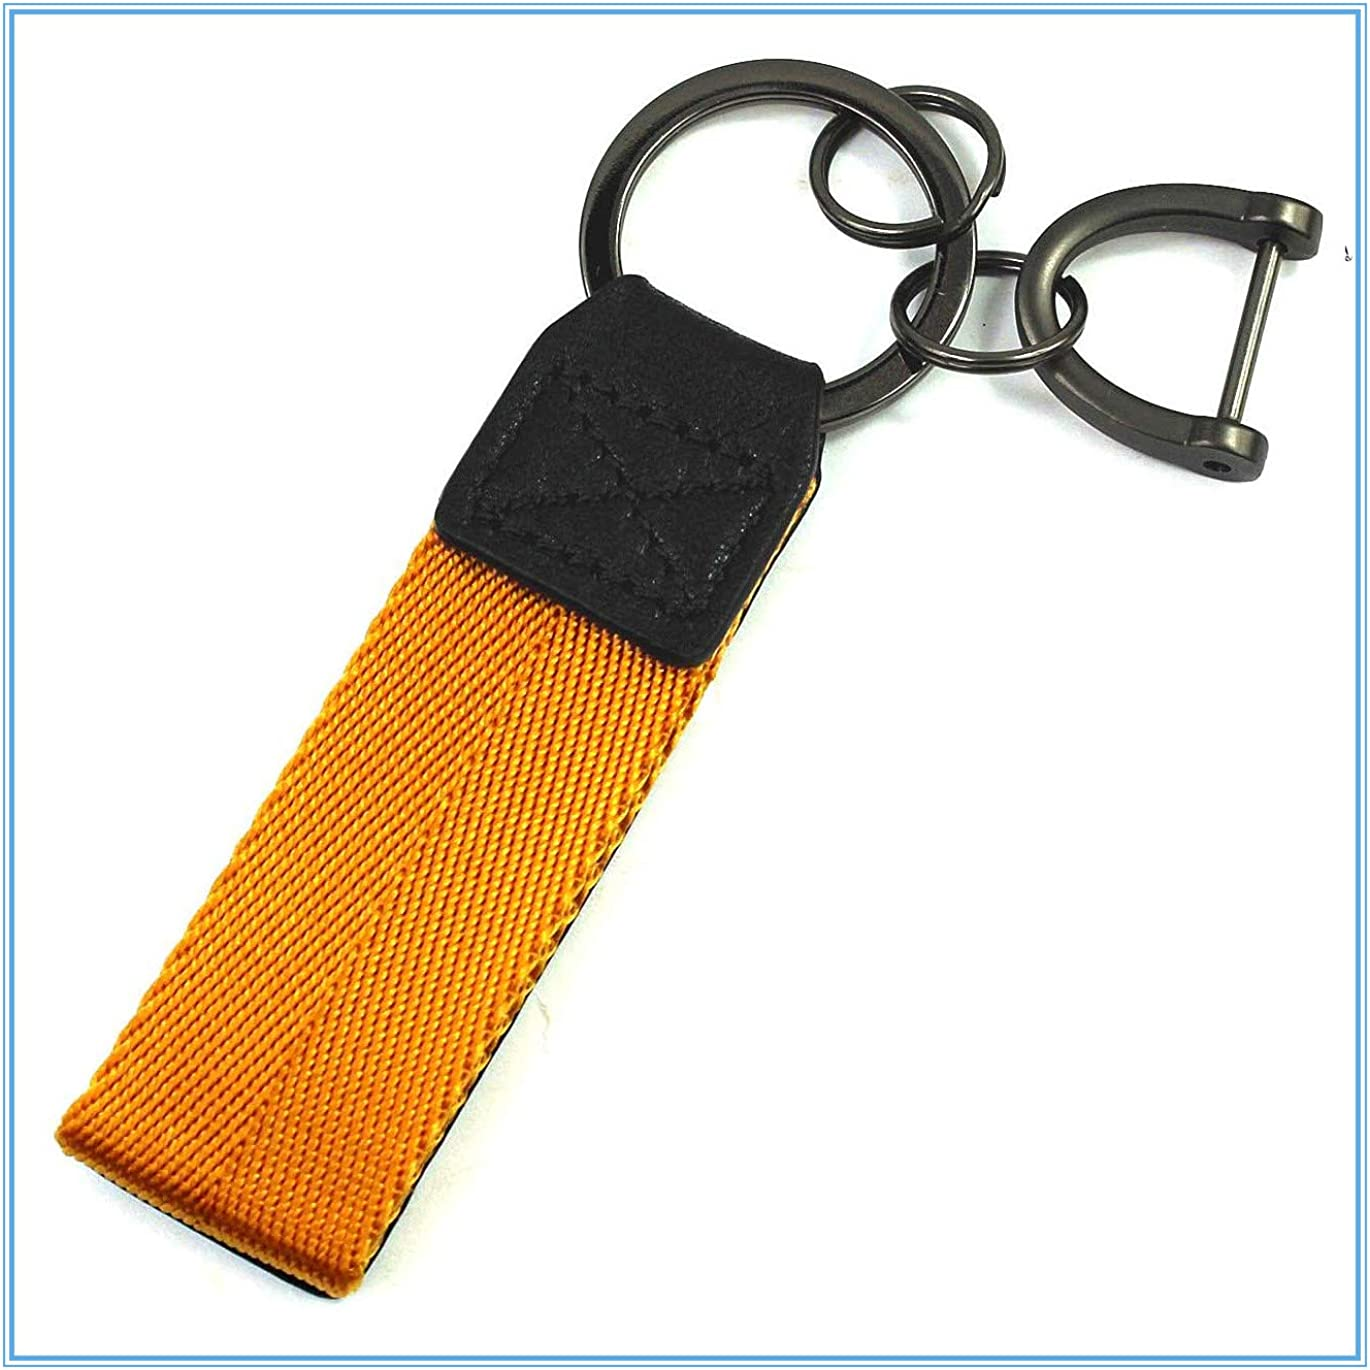 LXFF Genuine Leather Valet Keychain Car Key Chain Key fob Ring for Men Women in Gift Box fit Porsche Mercedes BMW Cadillac Lexus Audi Ford Toyota VW Honda Yellow